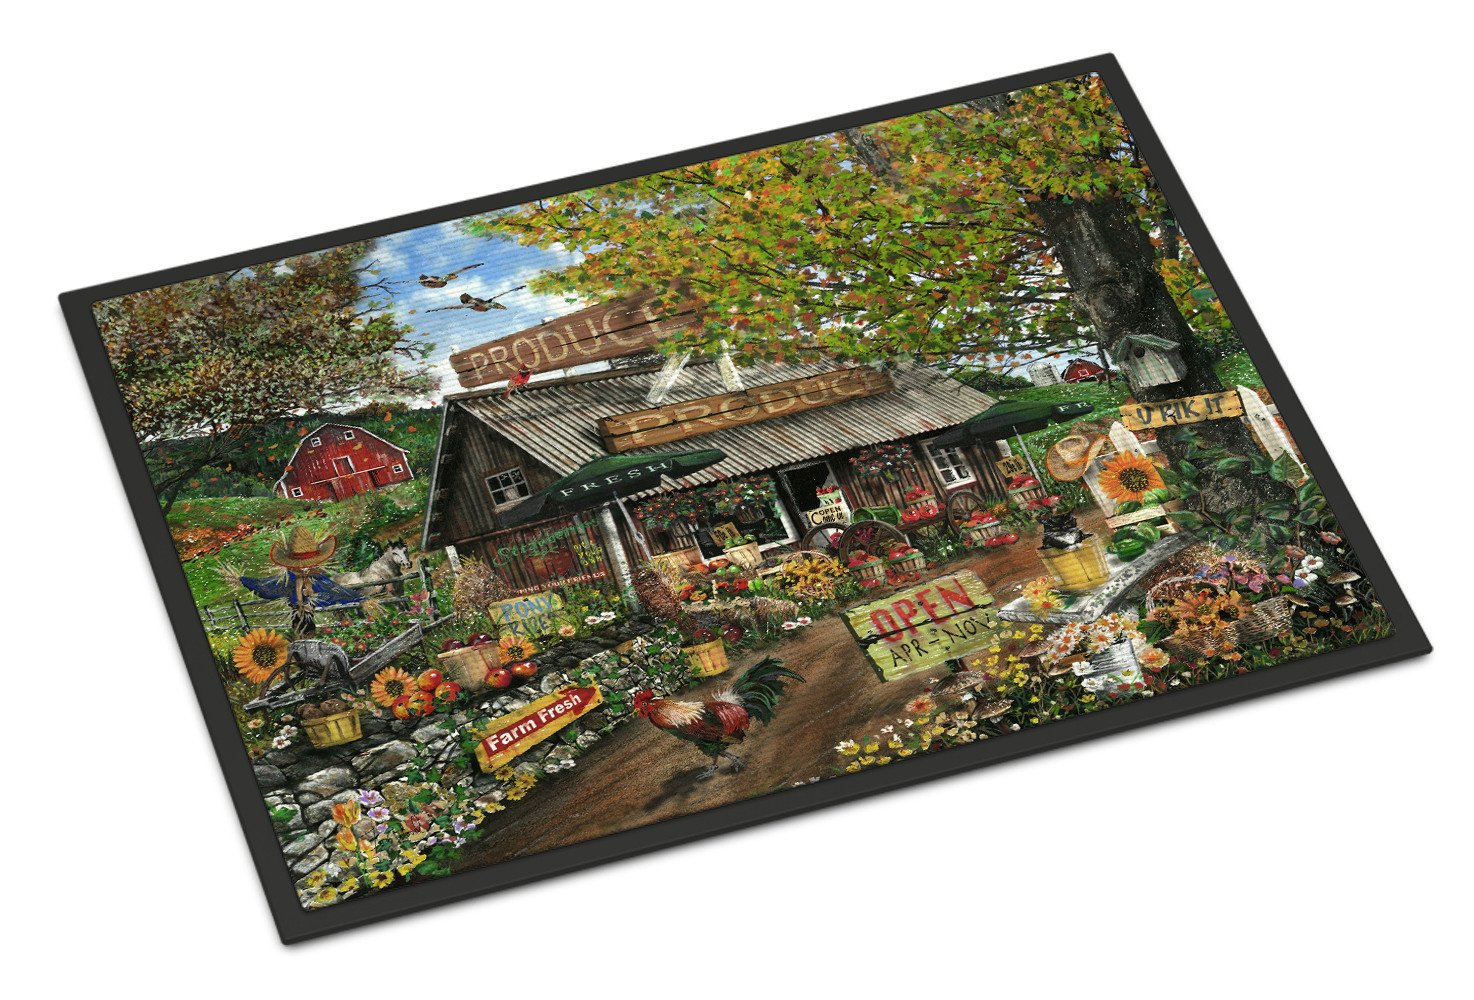 The Produce Fruit Stand Indoor or Outdoor Mat 18x27 PTW2017MAT by Caroline's Treasures